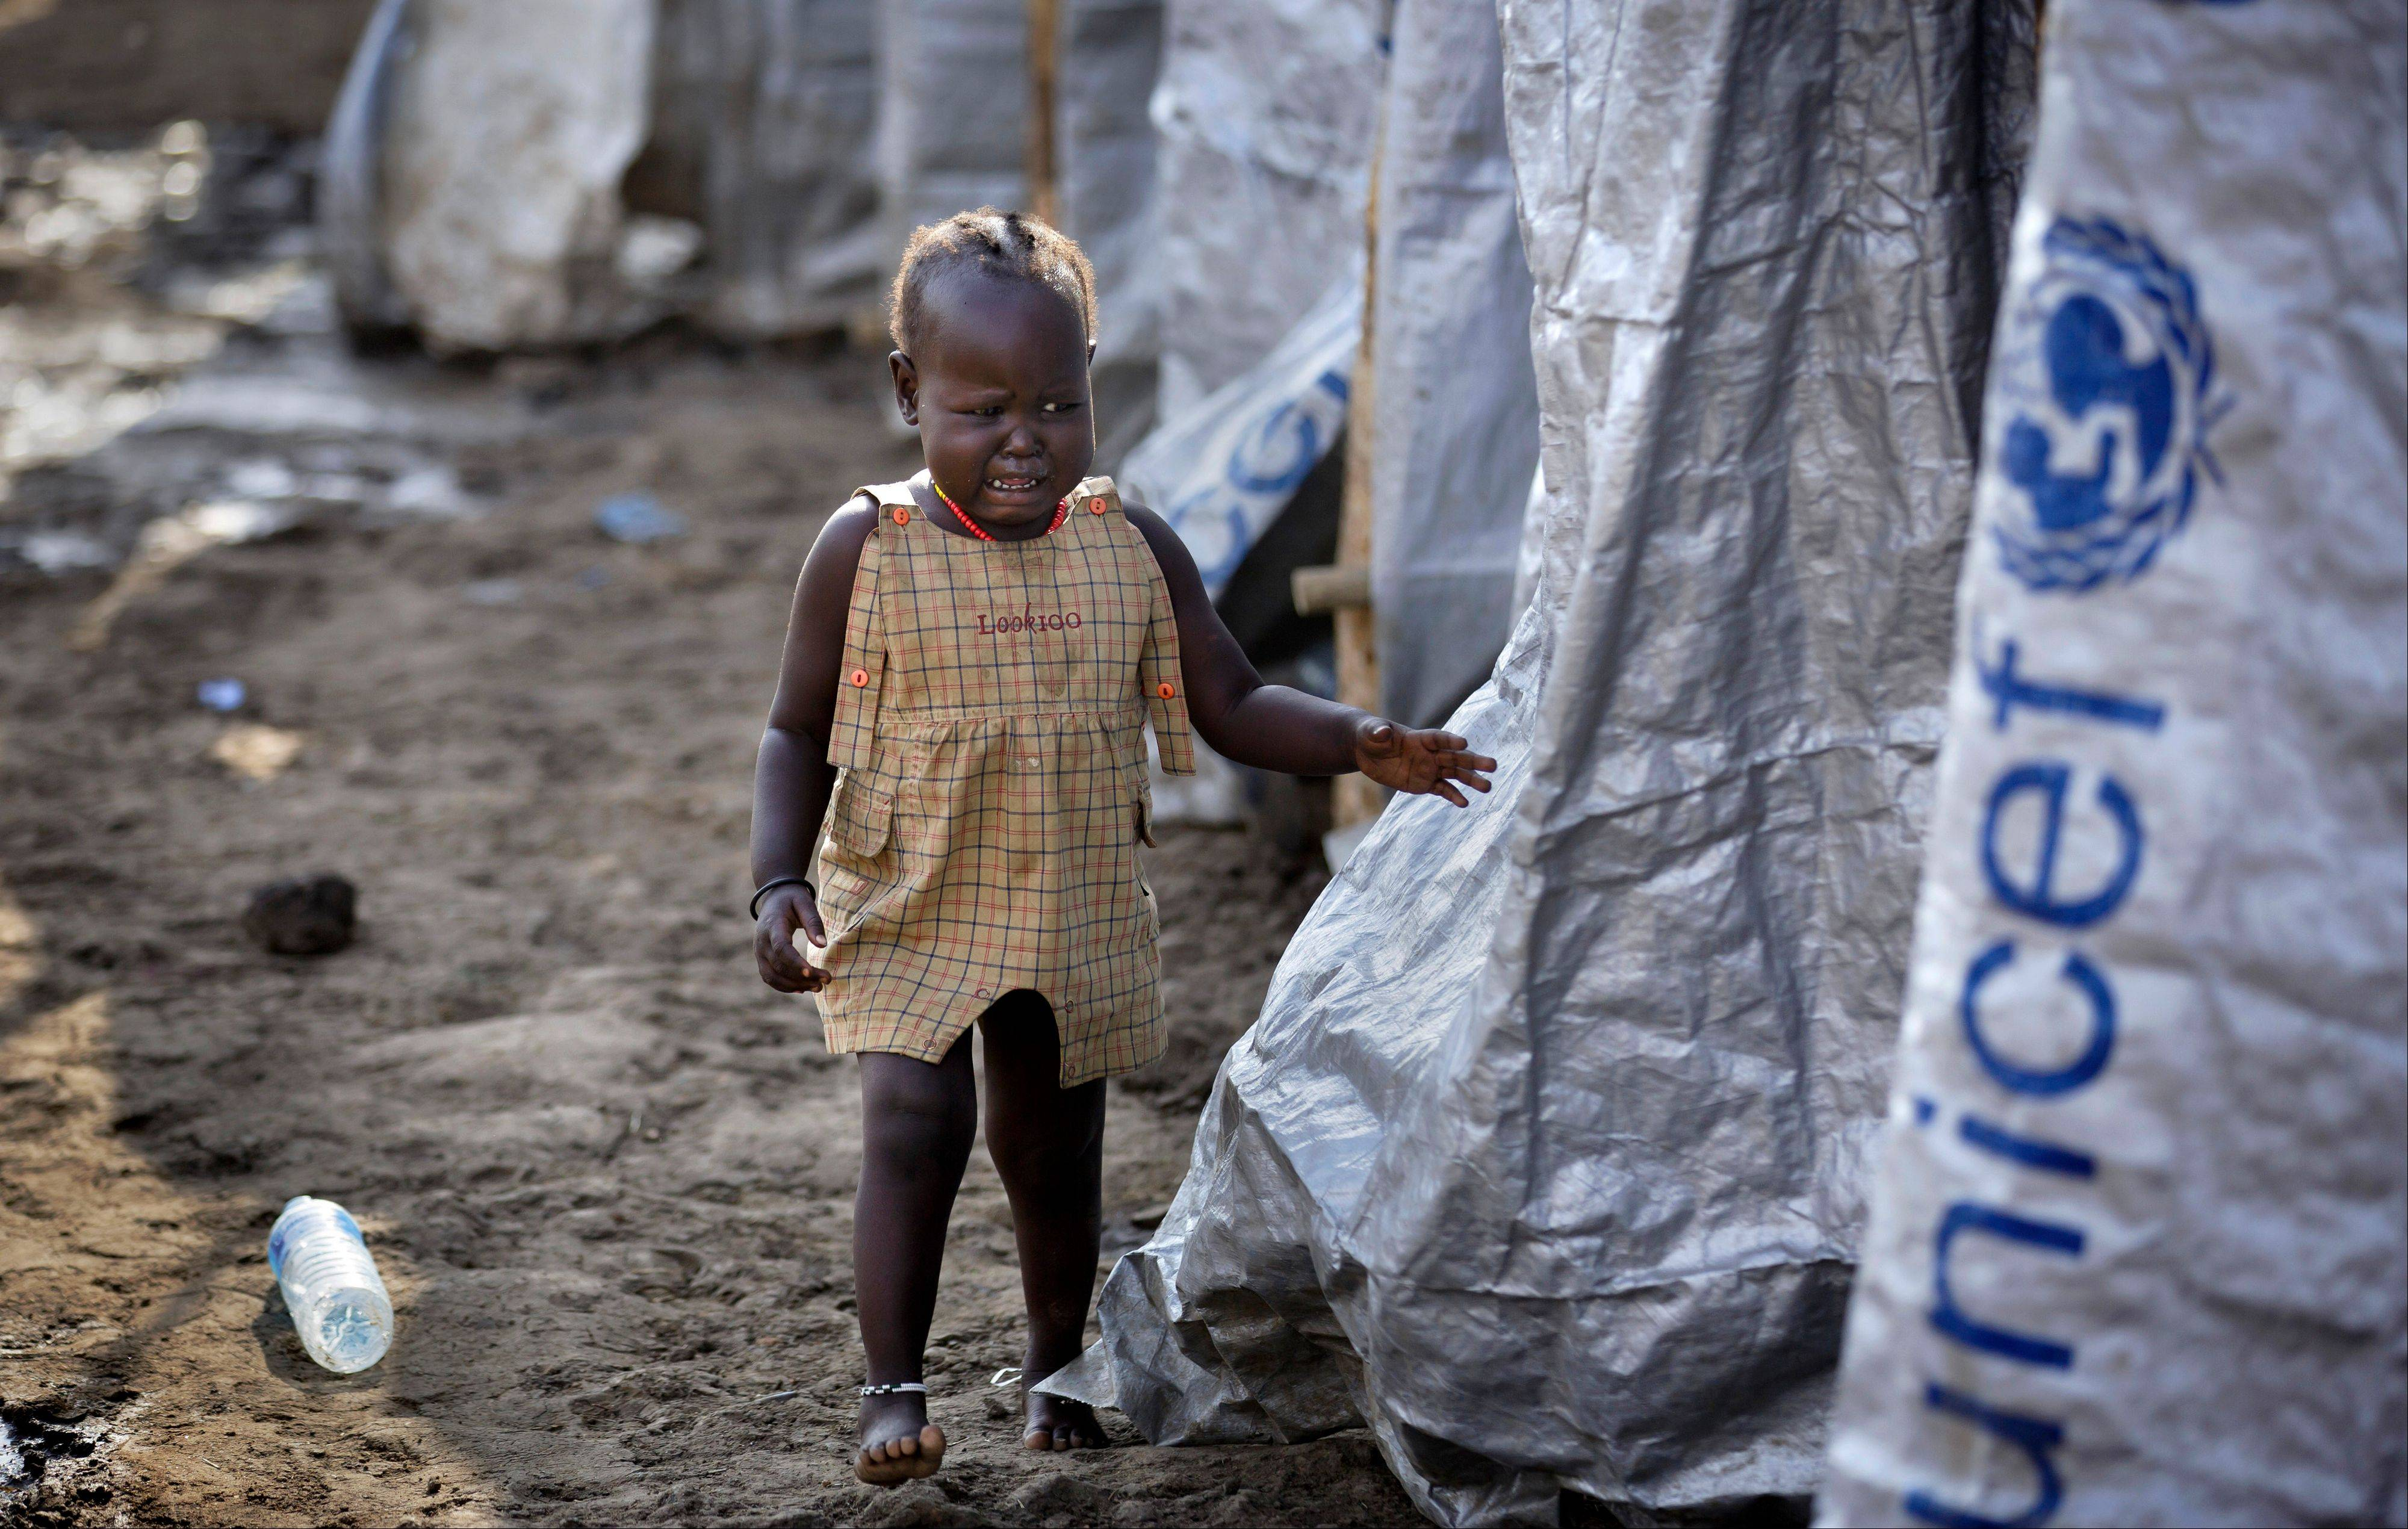 A young displaced girl starts crying after the relative she was with disappears into a row of latrines, at a United Nations compound which has become home to thousands of people displaced by the recent fighting, in the capital Juba, South Sudan, Sunday.